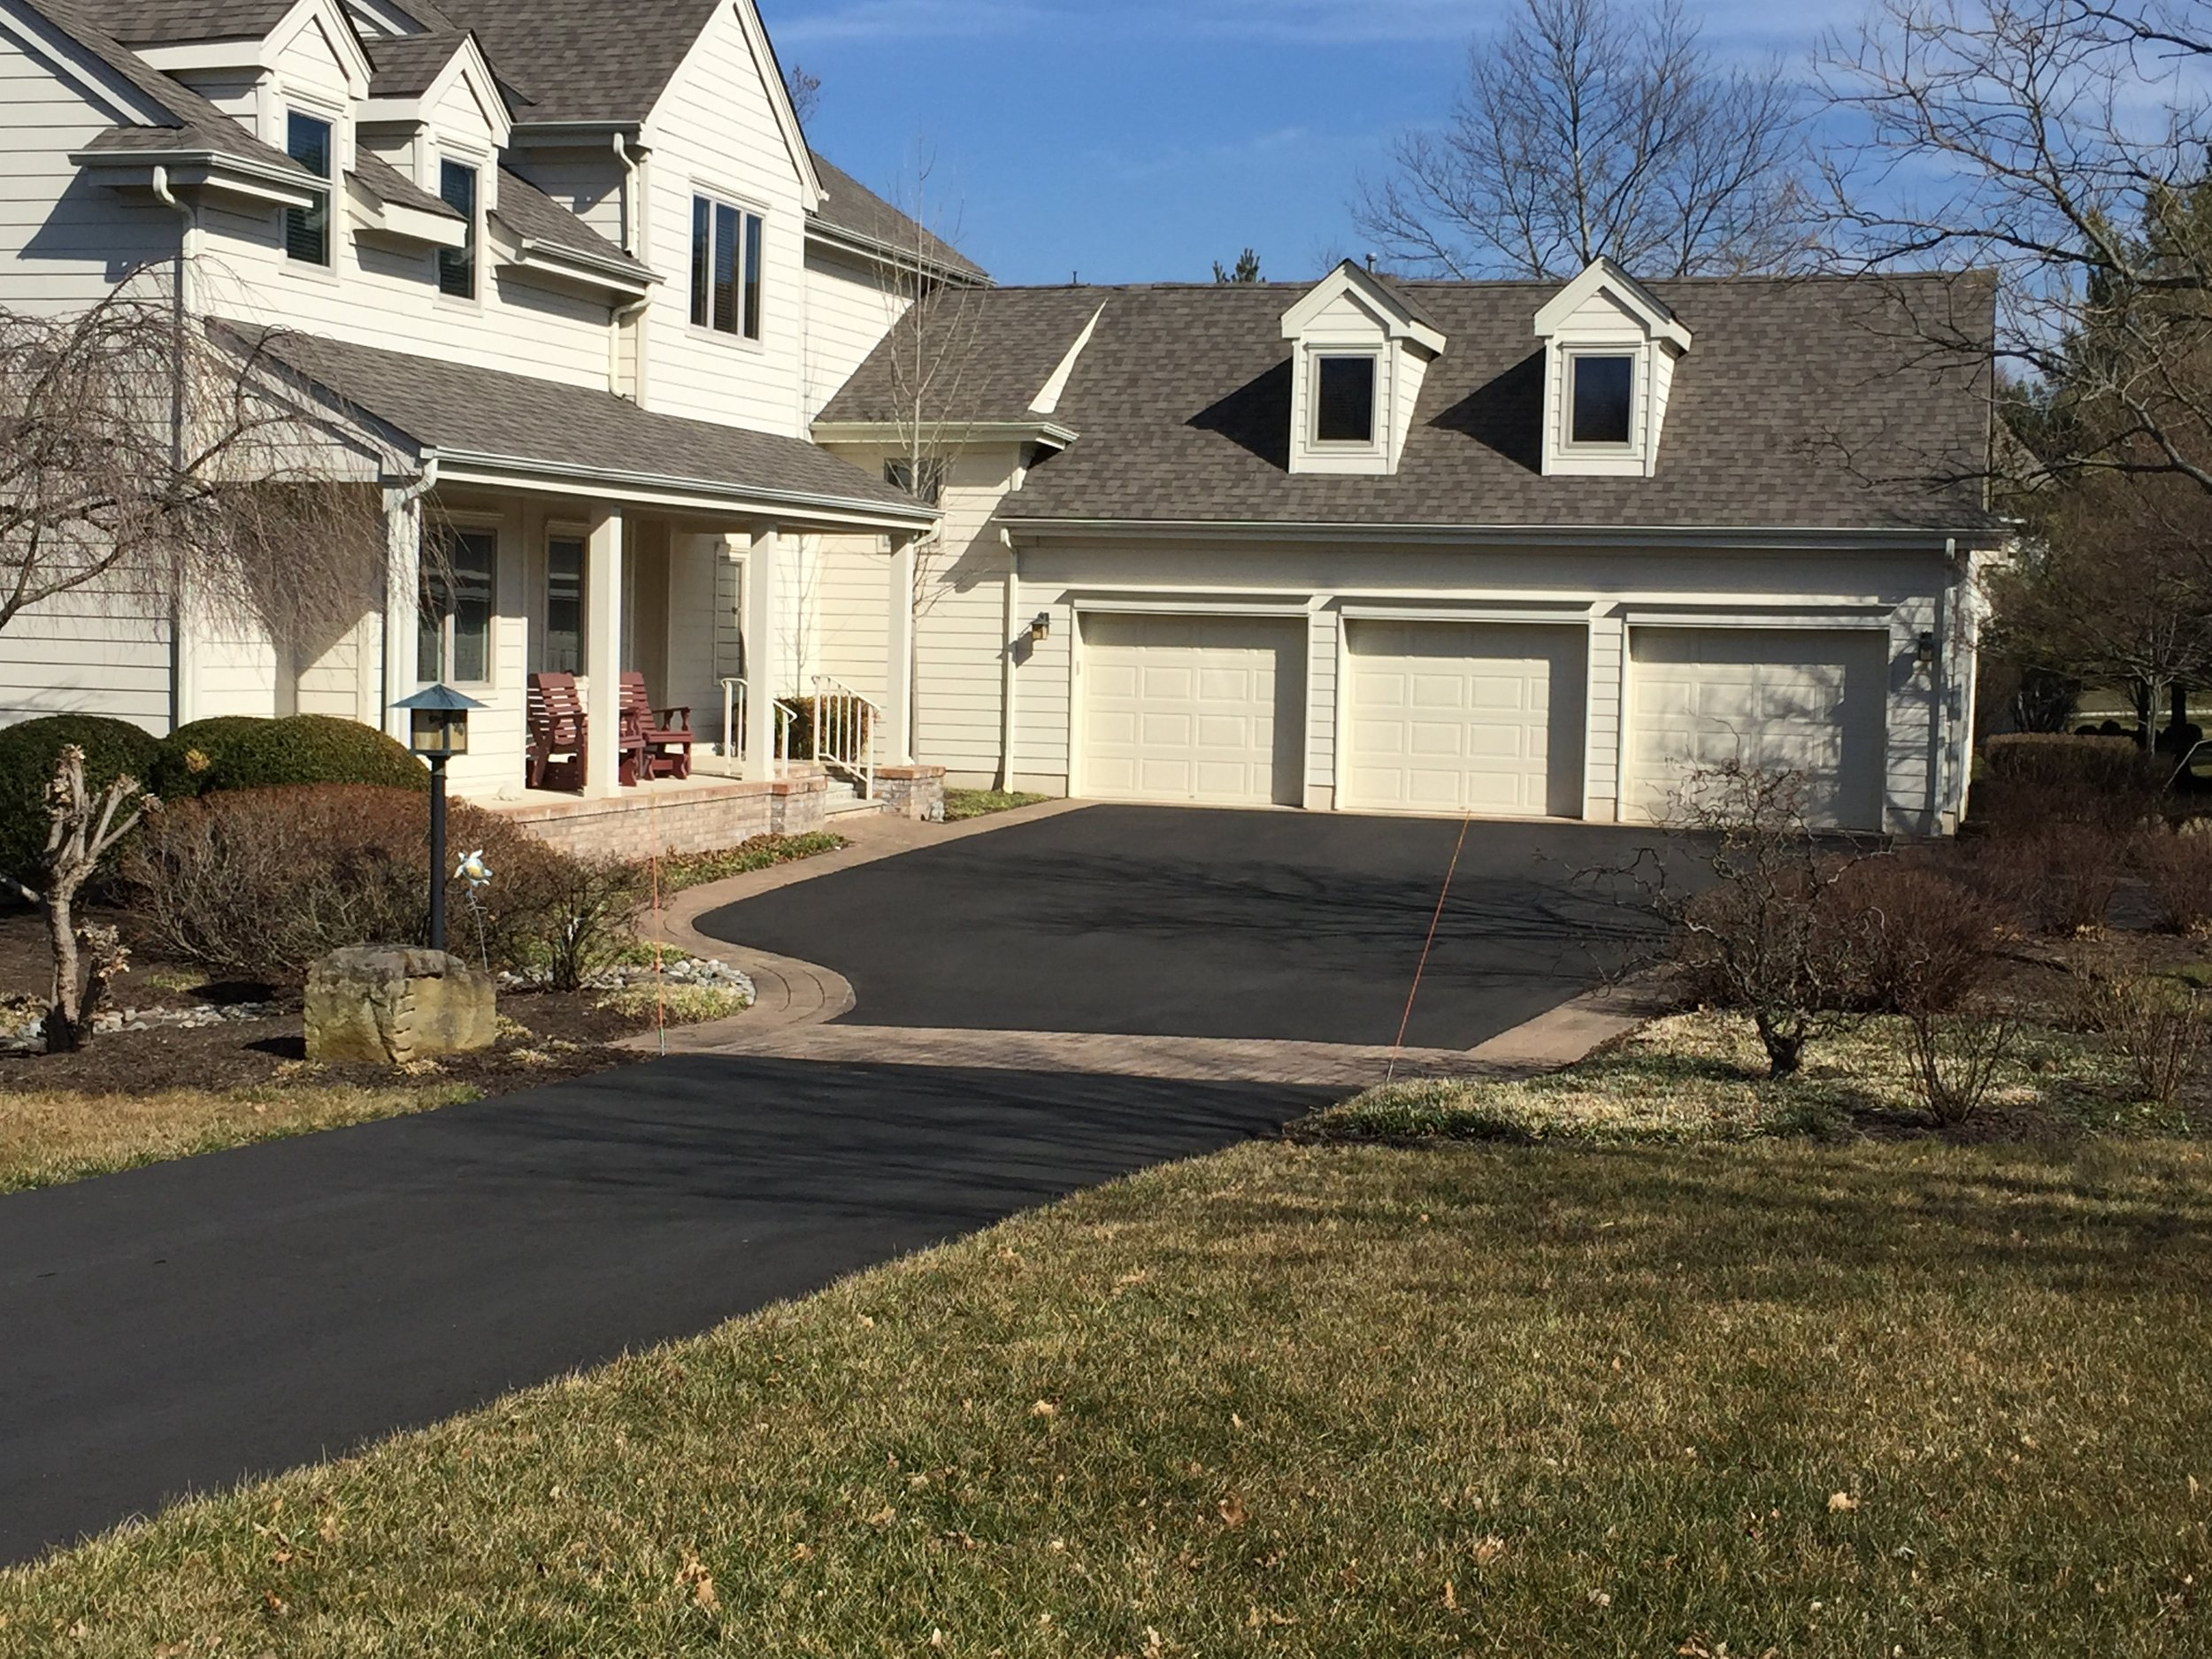 Three Car Garage Driveway Paving and Curbing Contractor in Skillman, NJ